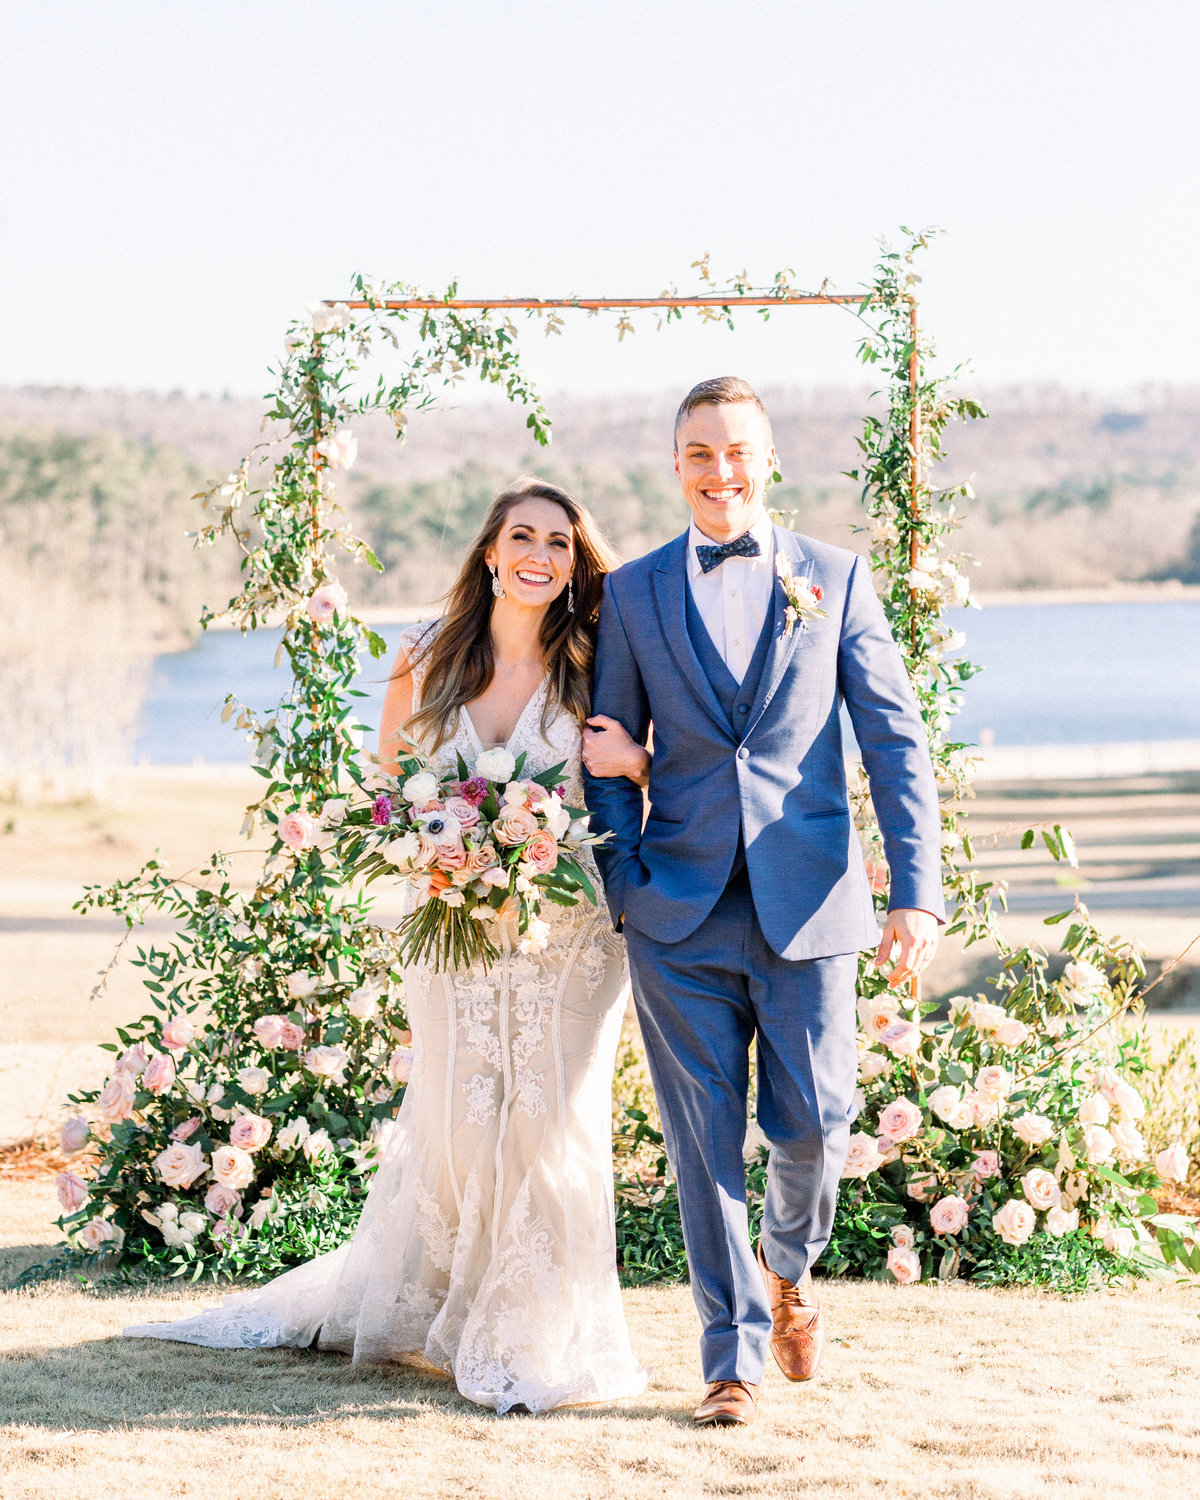 Callaway Garden Wedding Pine Mountain Georiga by Courtney Sample Photography-130